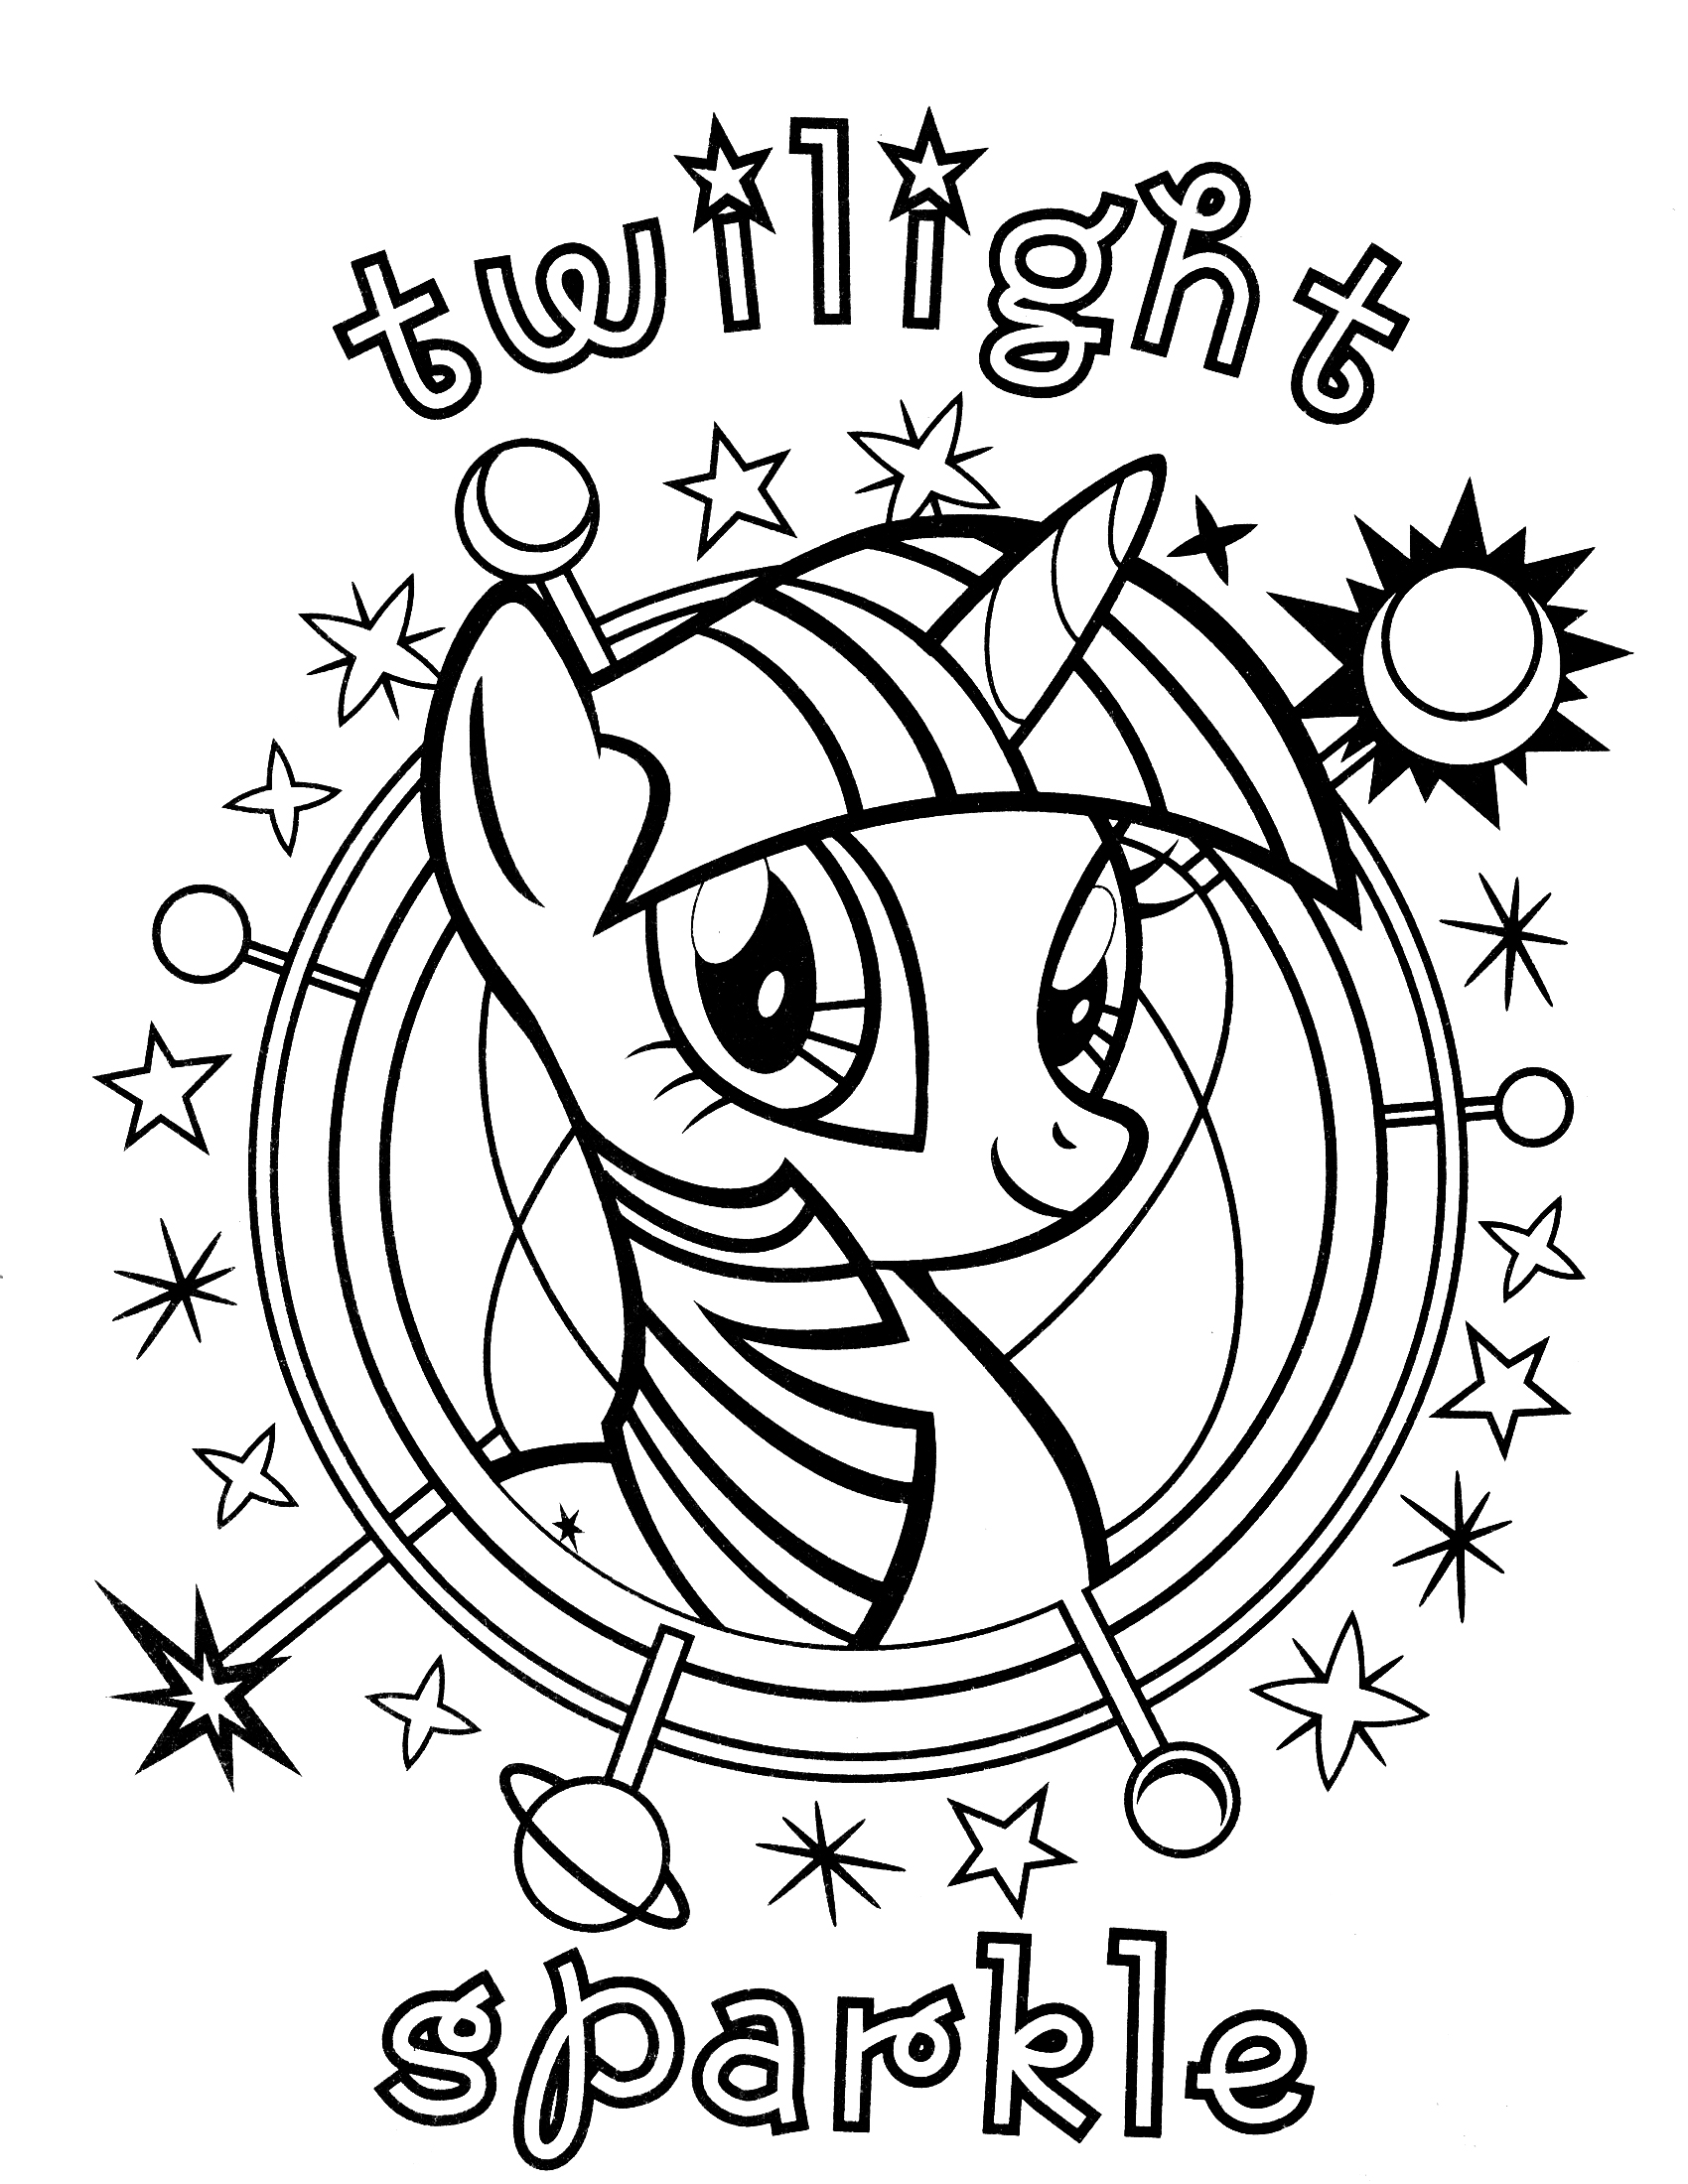 My Little Pony Names Coloring Pages : Juguetes para colorear pintar e imprimir